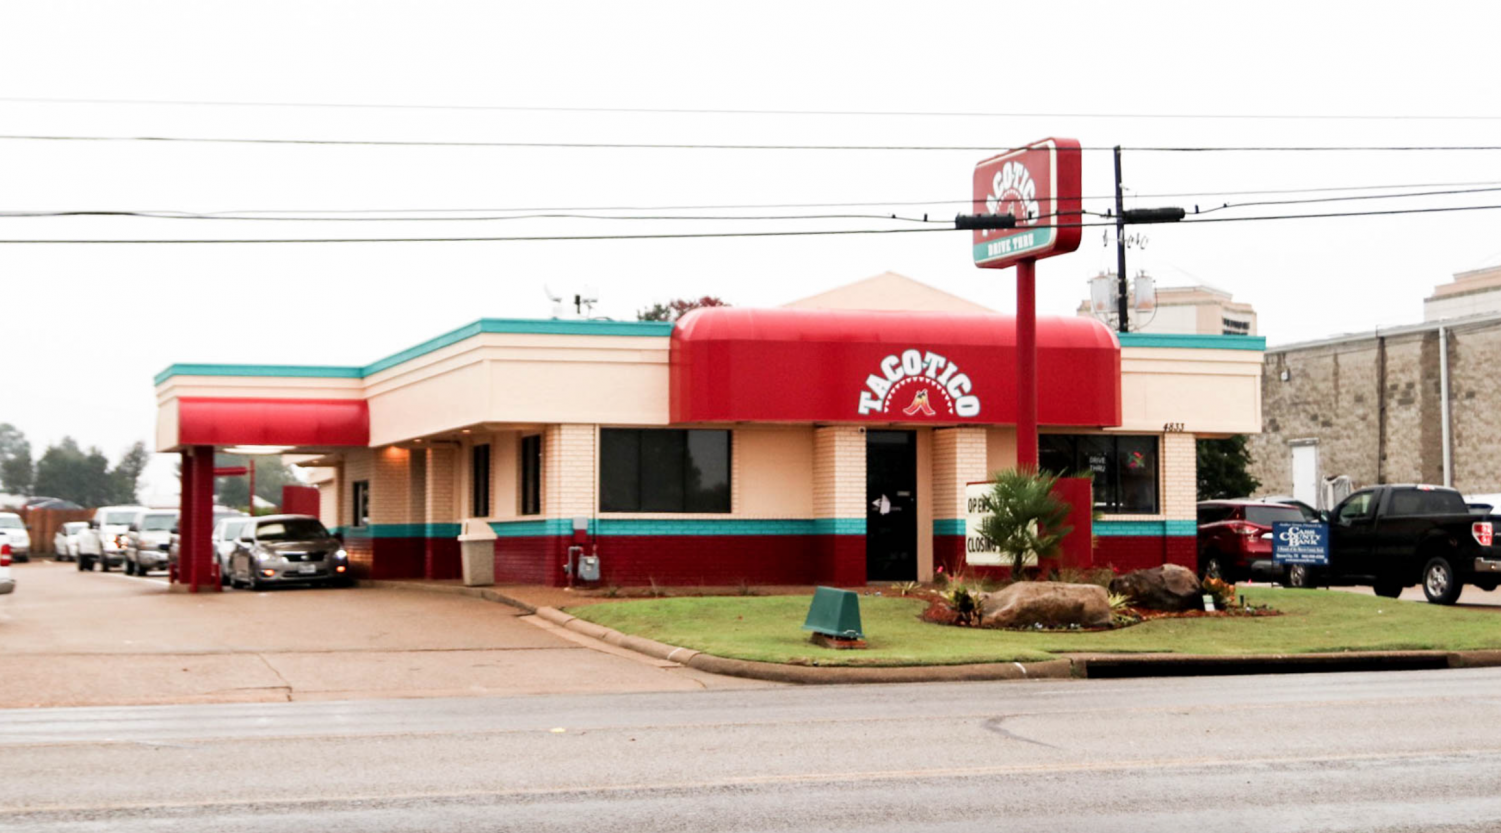 Taco Tico recently opened a new location on Texas Blvd. in the old Backyard Burger location. Customers ordered over 6,000 taco burgers in the first week of Taco Tico's return to Texarkana.